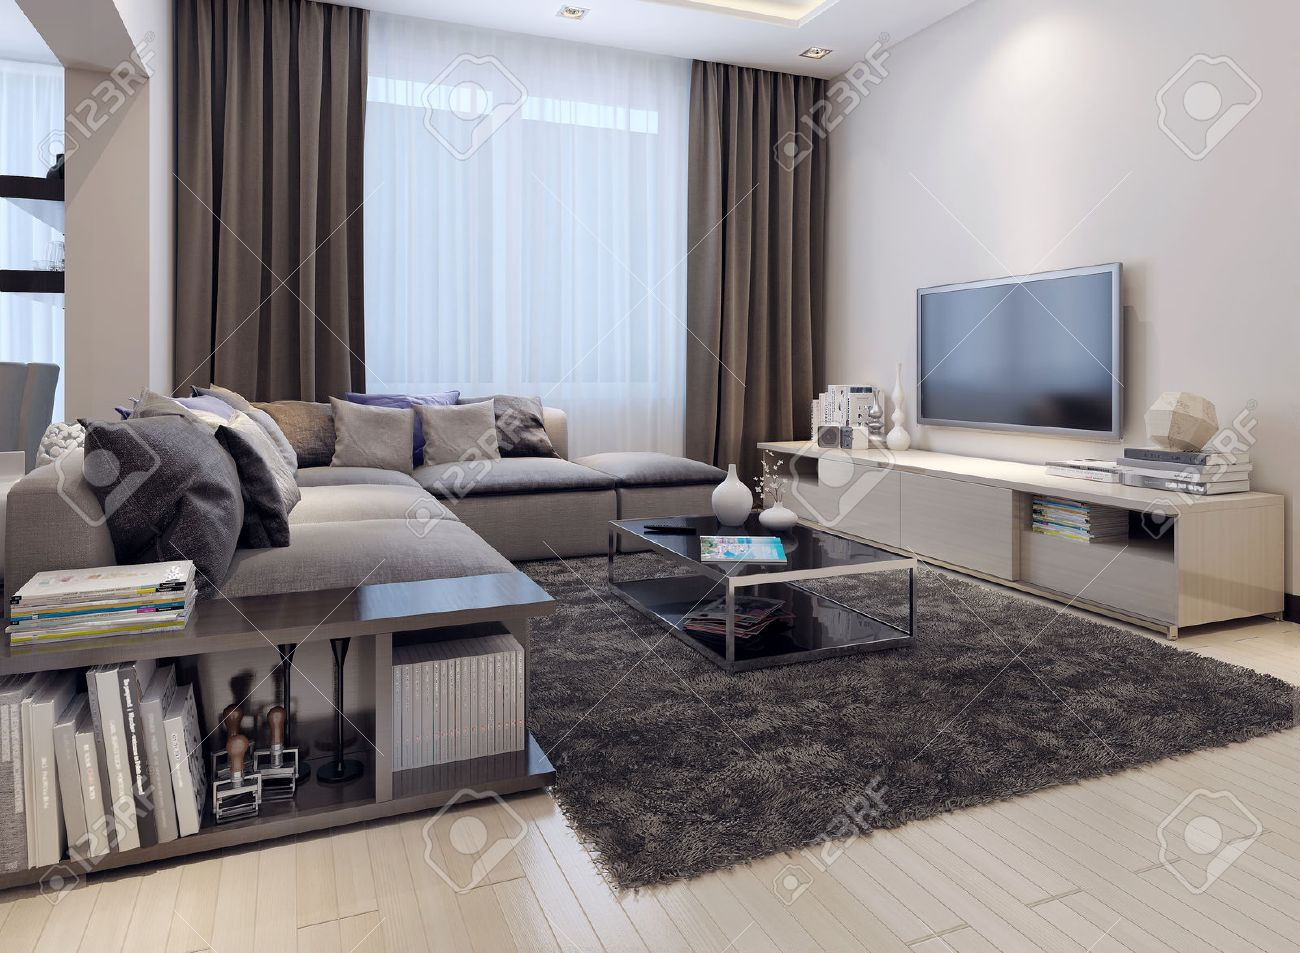 Living Room Contemporary Style, 3D Images Stock Photo, Picture And ...